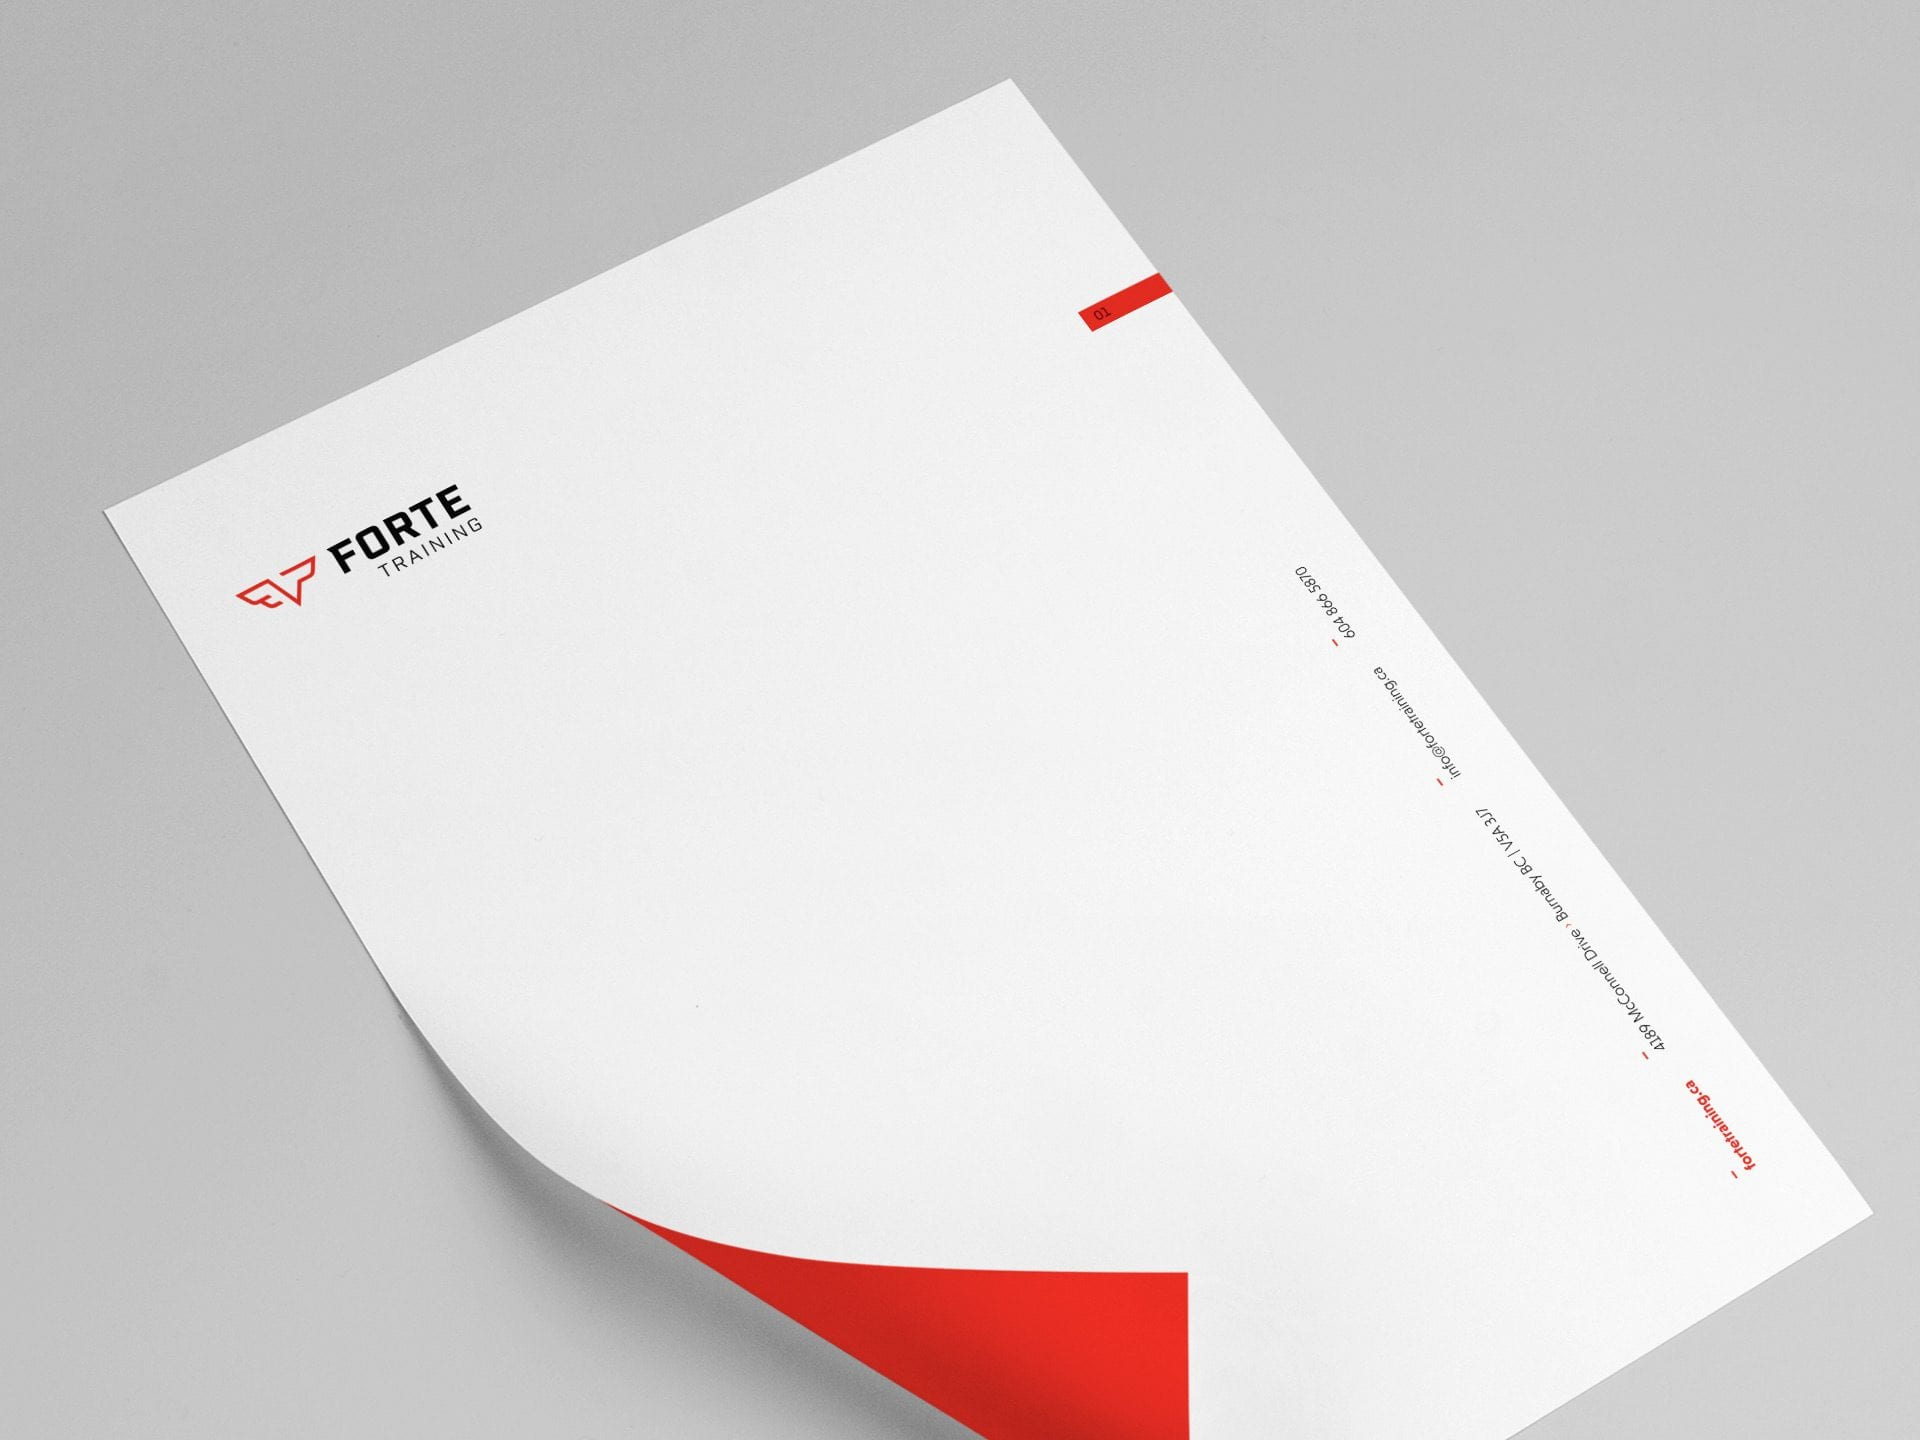 Y5 Creative Case Studies Forte Training 2019 Letterhead